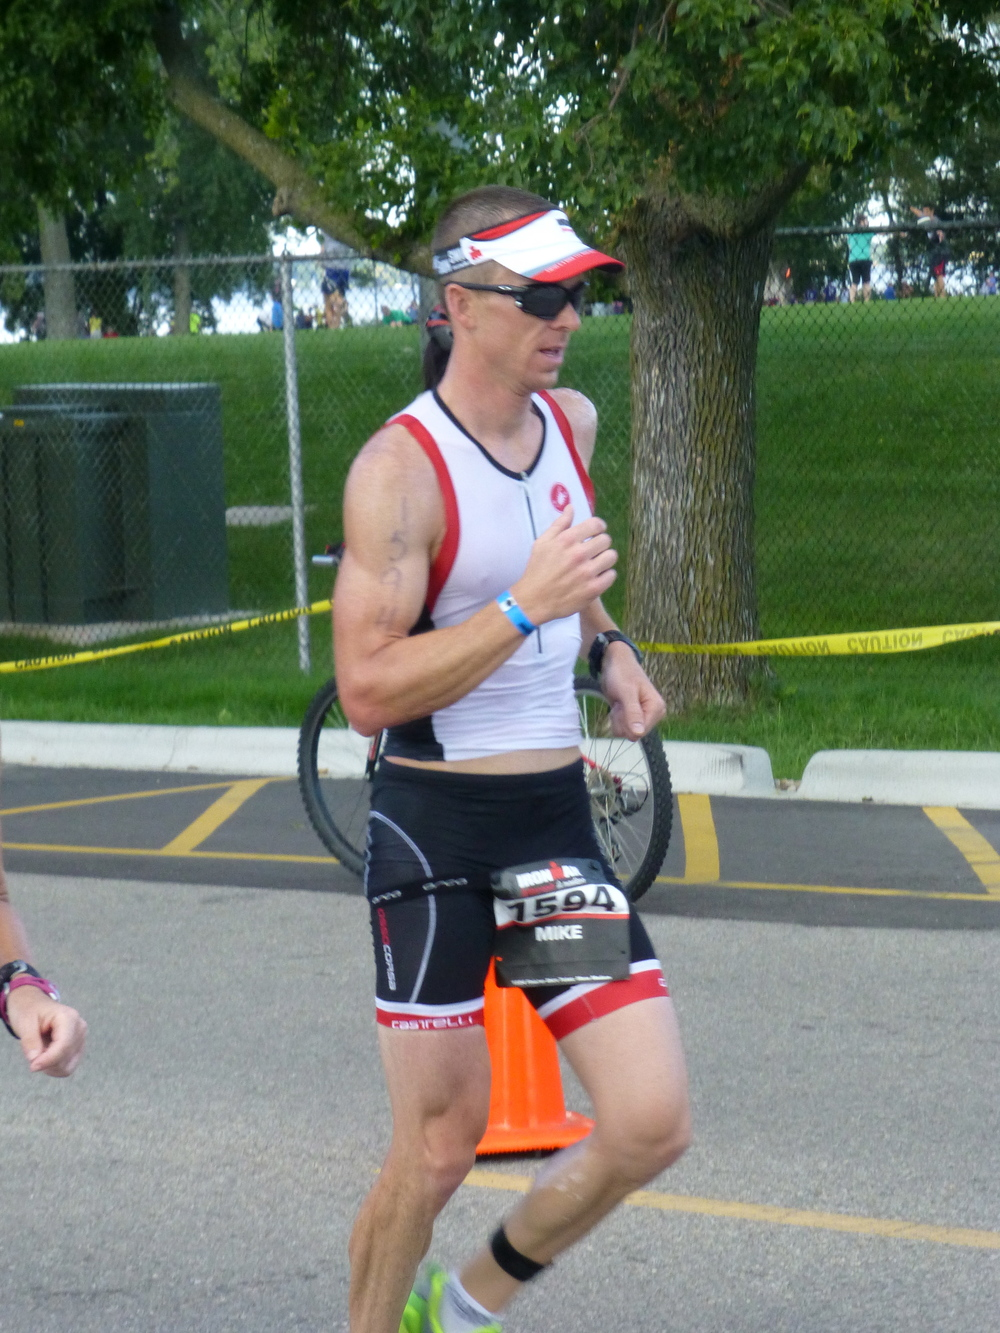 MIKE TOUTANT Top Age Grouper - Kona Hopeful